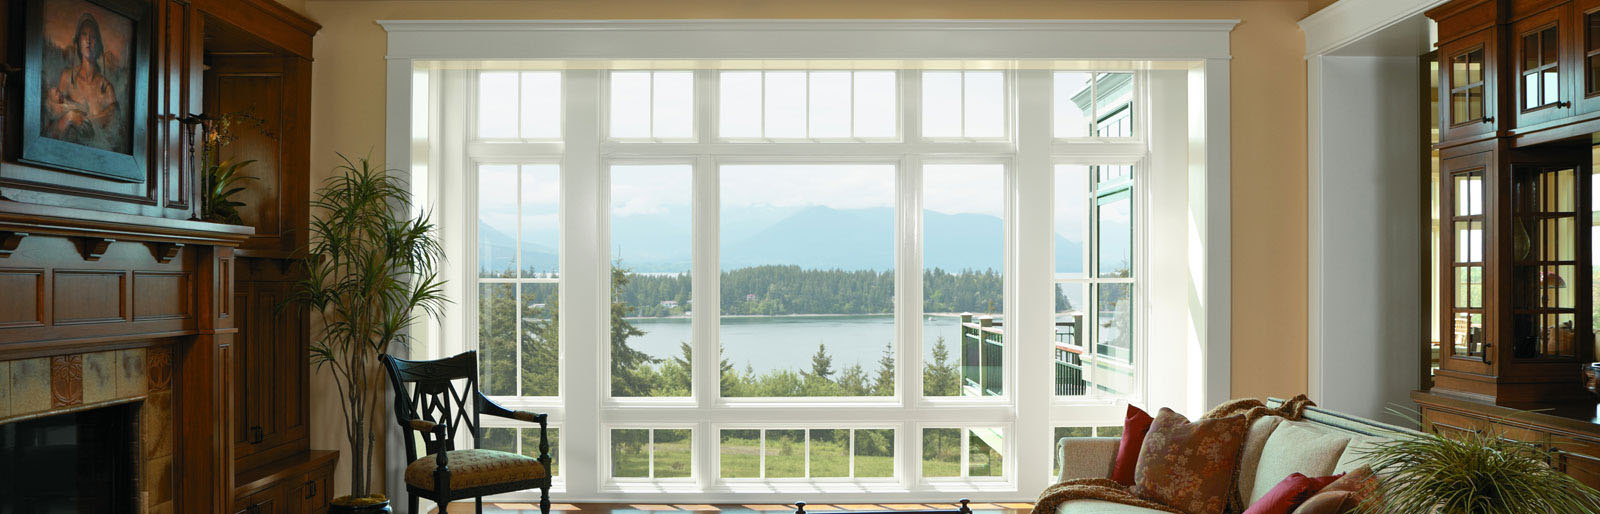 Anderson windows andersen windows - Anderson Windows